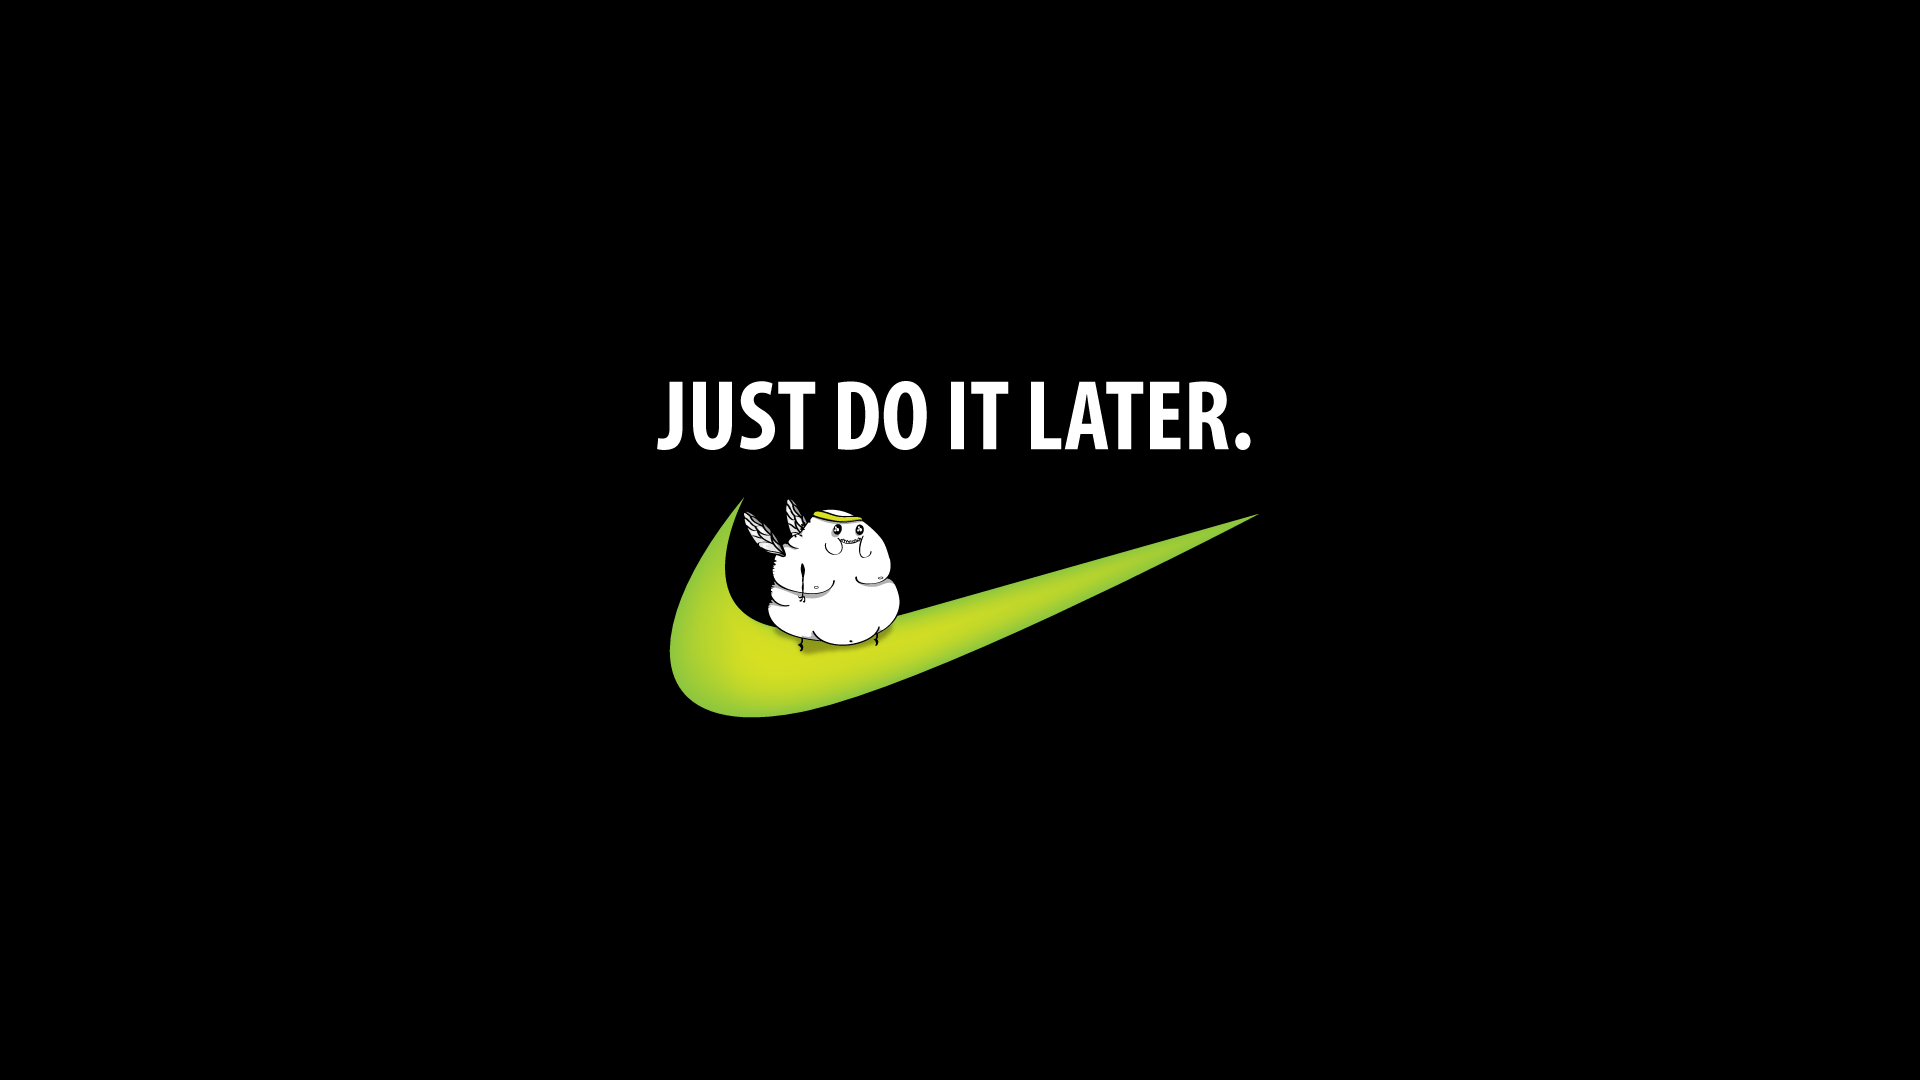 Pin By Fuki Mishiro On Words Just Do It Wallpapers Nike Wallpaper Funny Computer Backgrounds